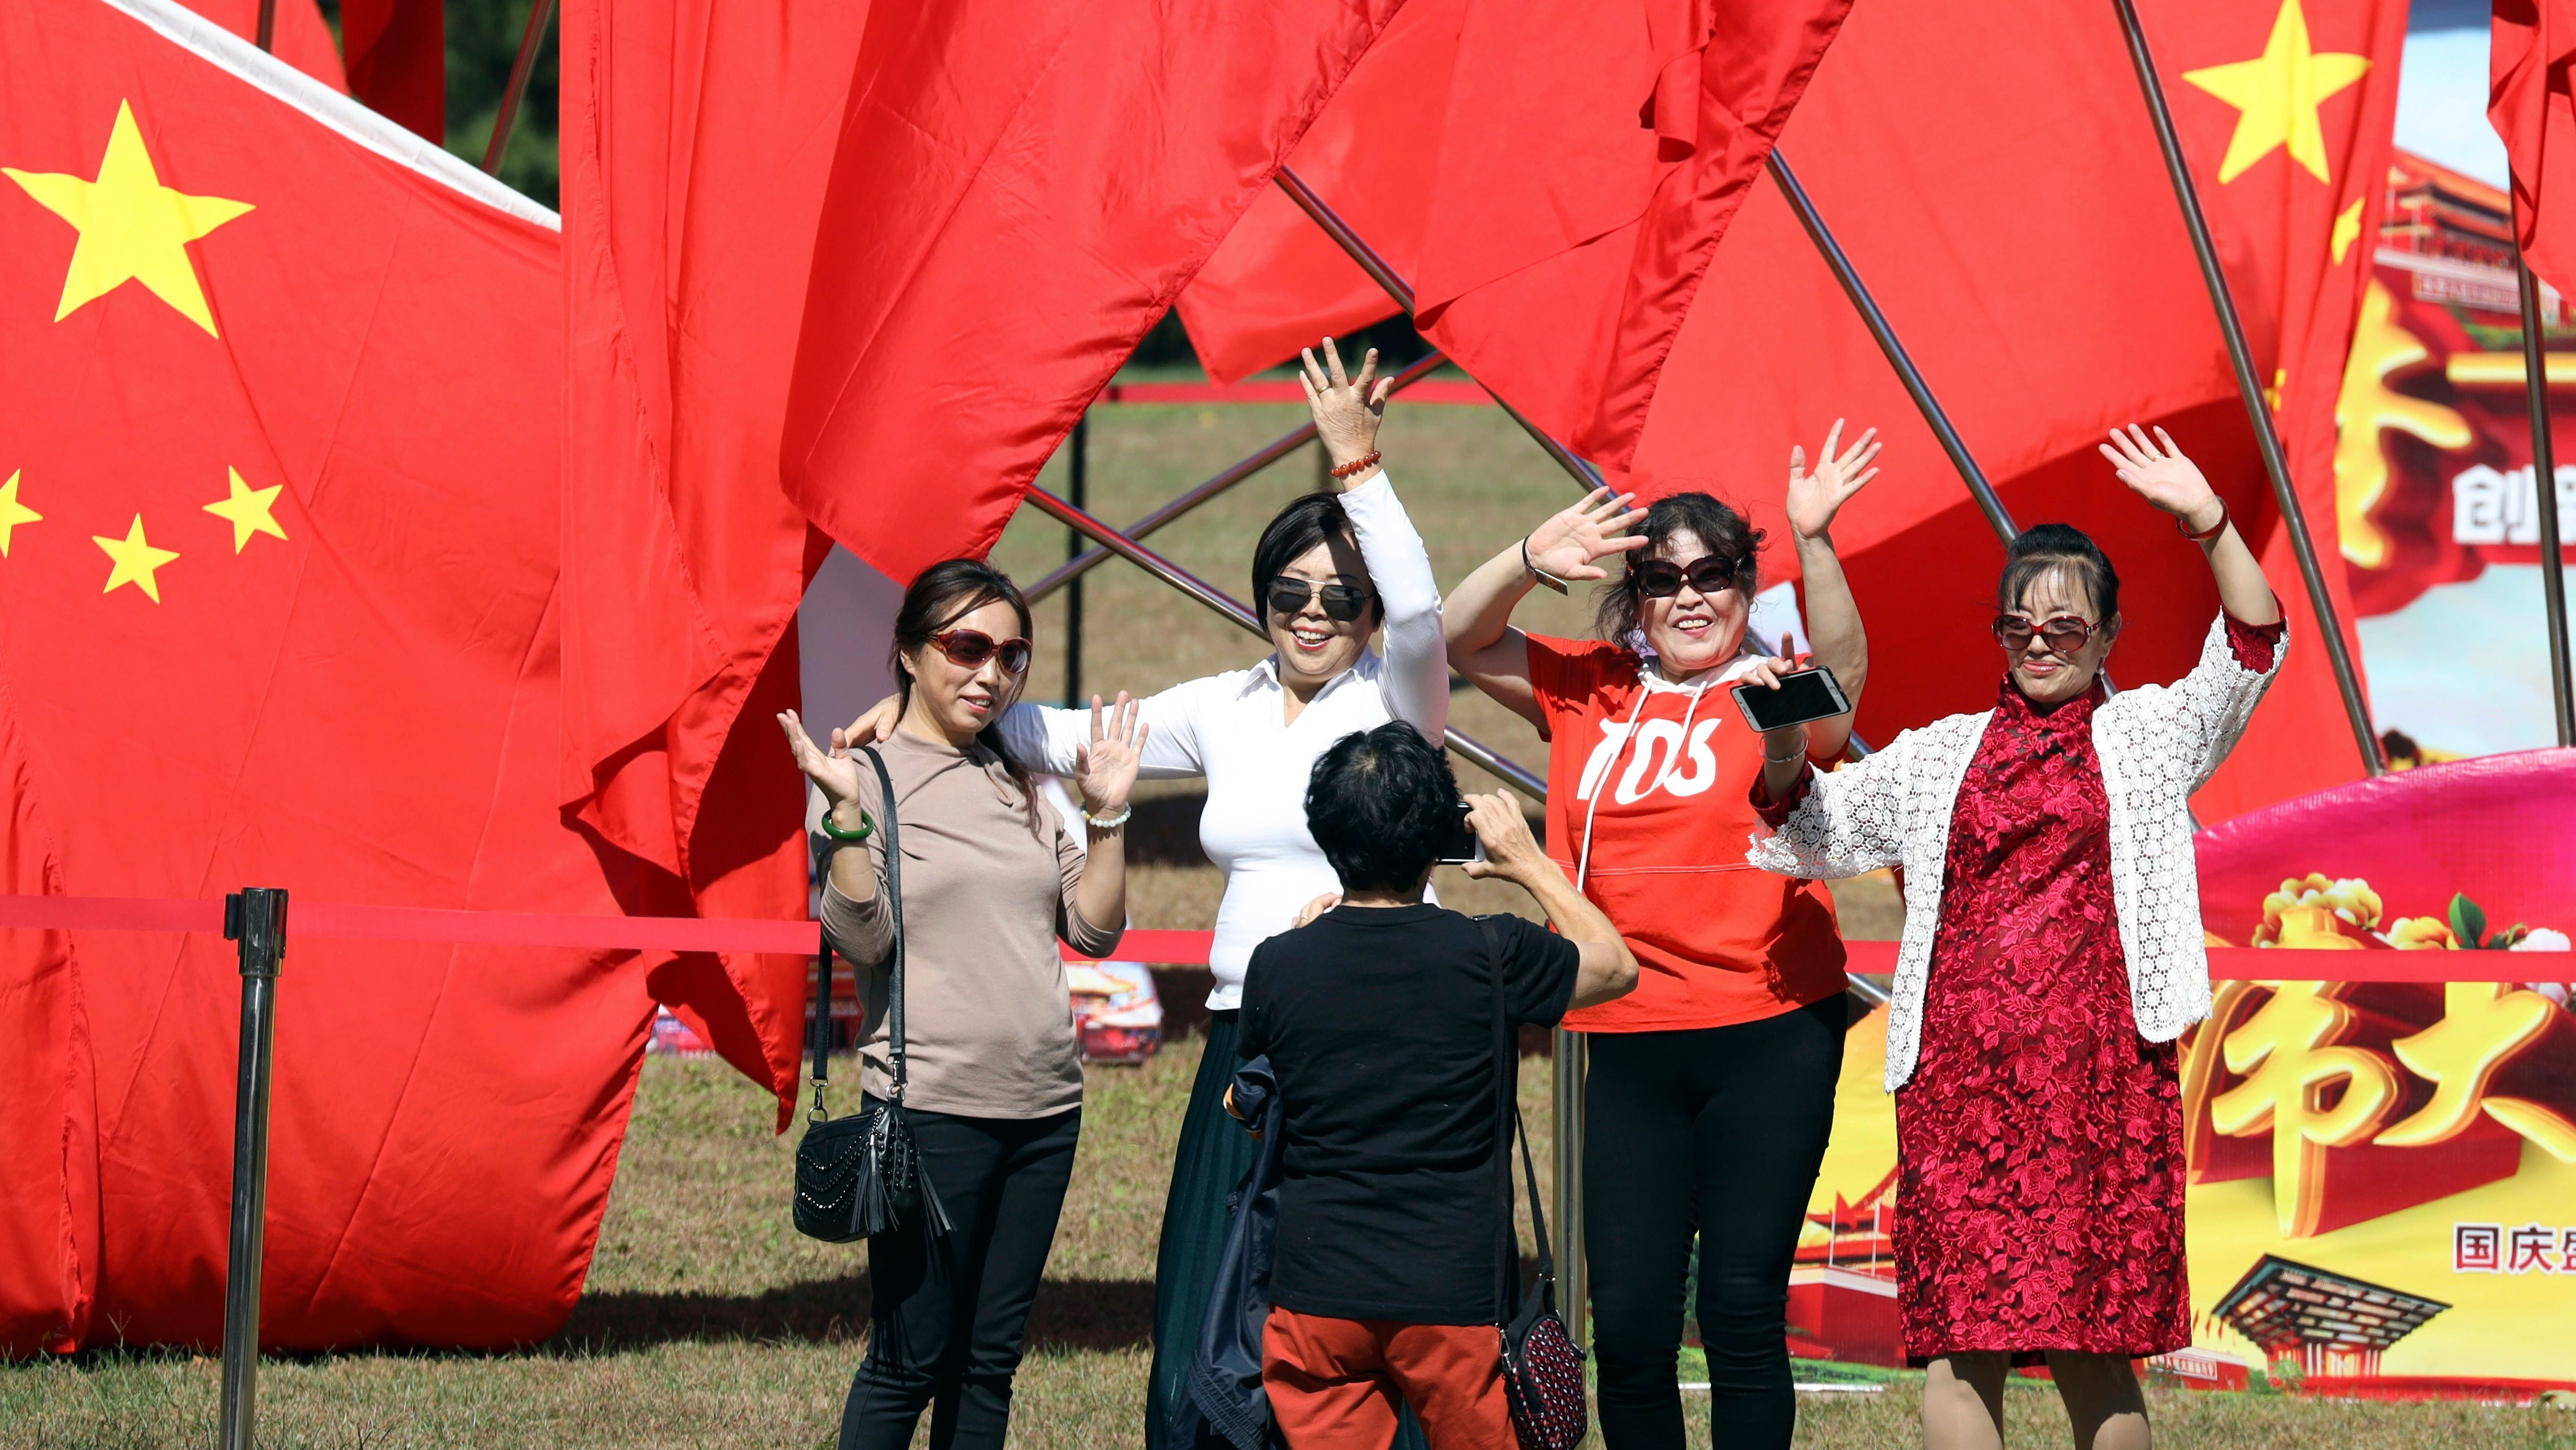 Women pose for photos near Chinese national flags flown to mark the National Day in Beijing, China Monday, Oct. 1, 2018. Chinese across the country are enjoying the week-long golden week holiday that coincides with the National Day celebrations.